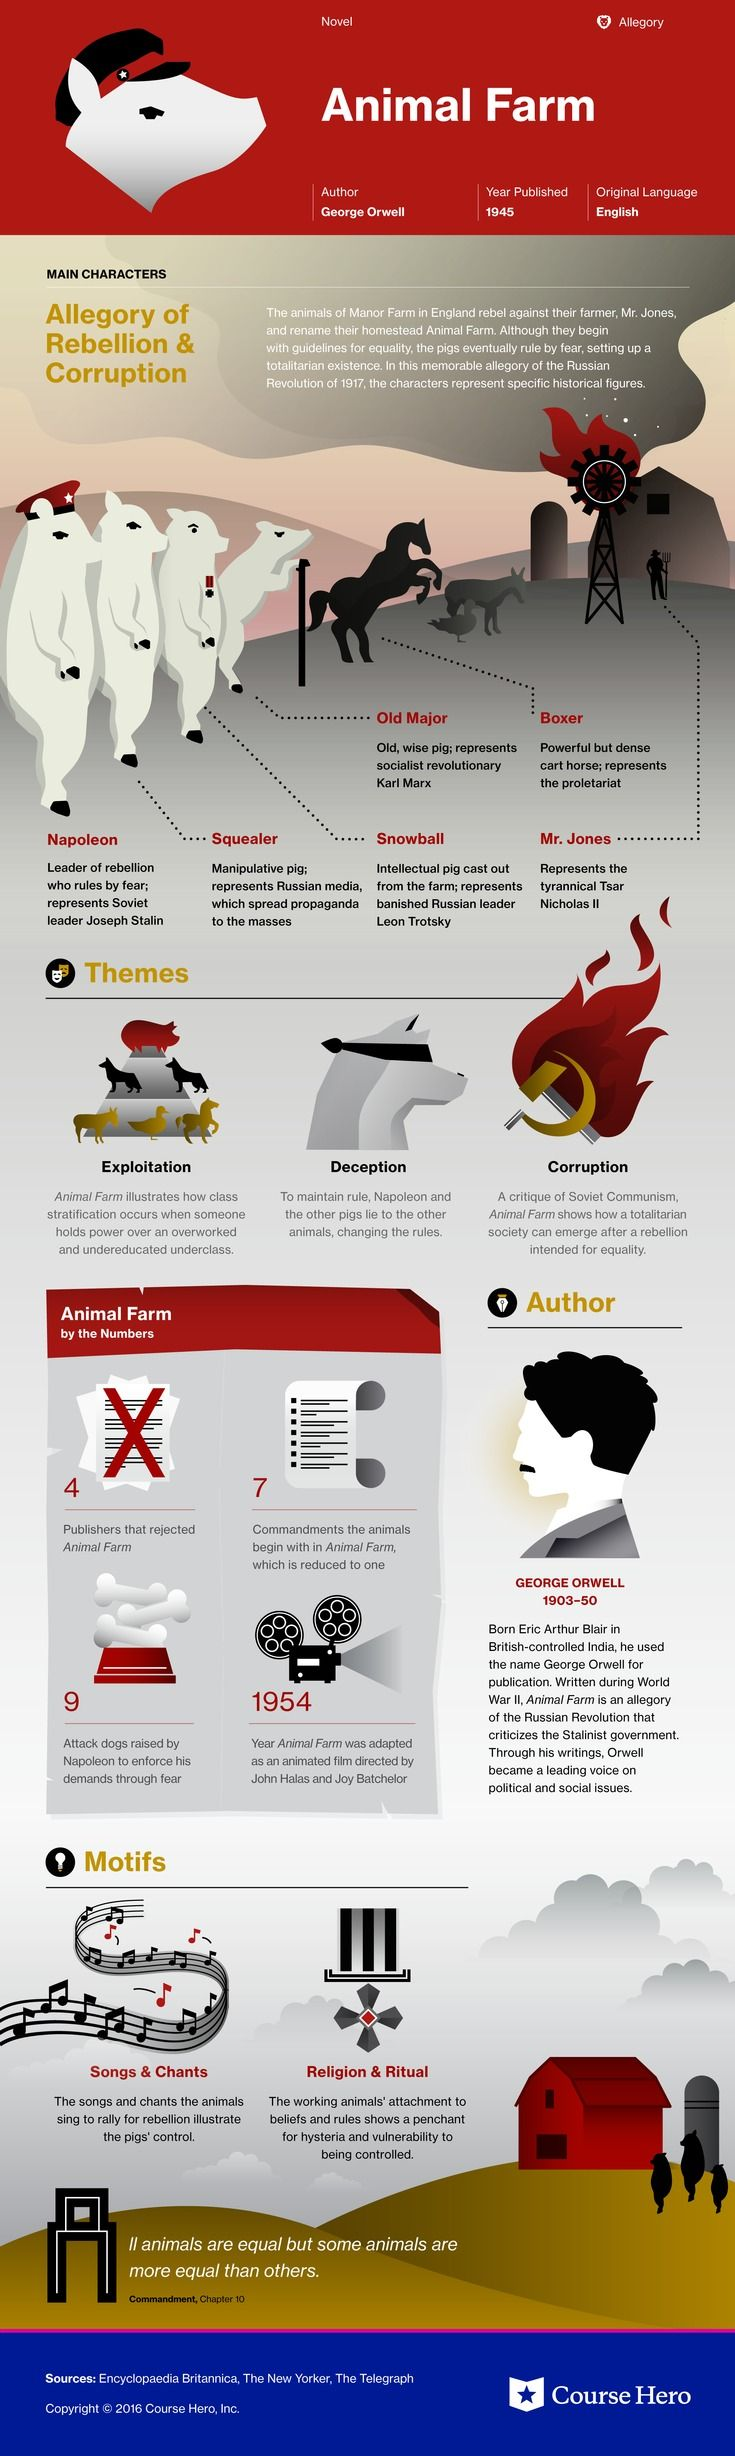 best ideas about animal farm novel animal farm this coursehero infographic on animal farm is both visually stunning and informative